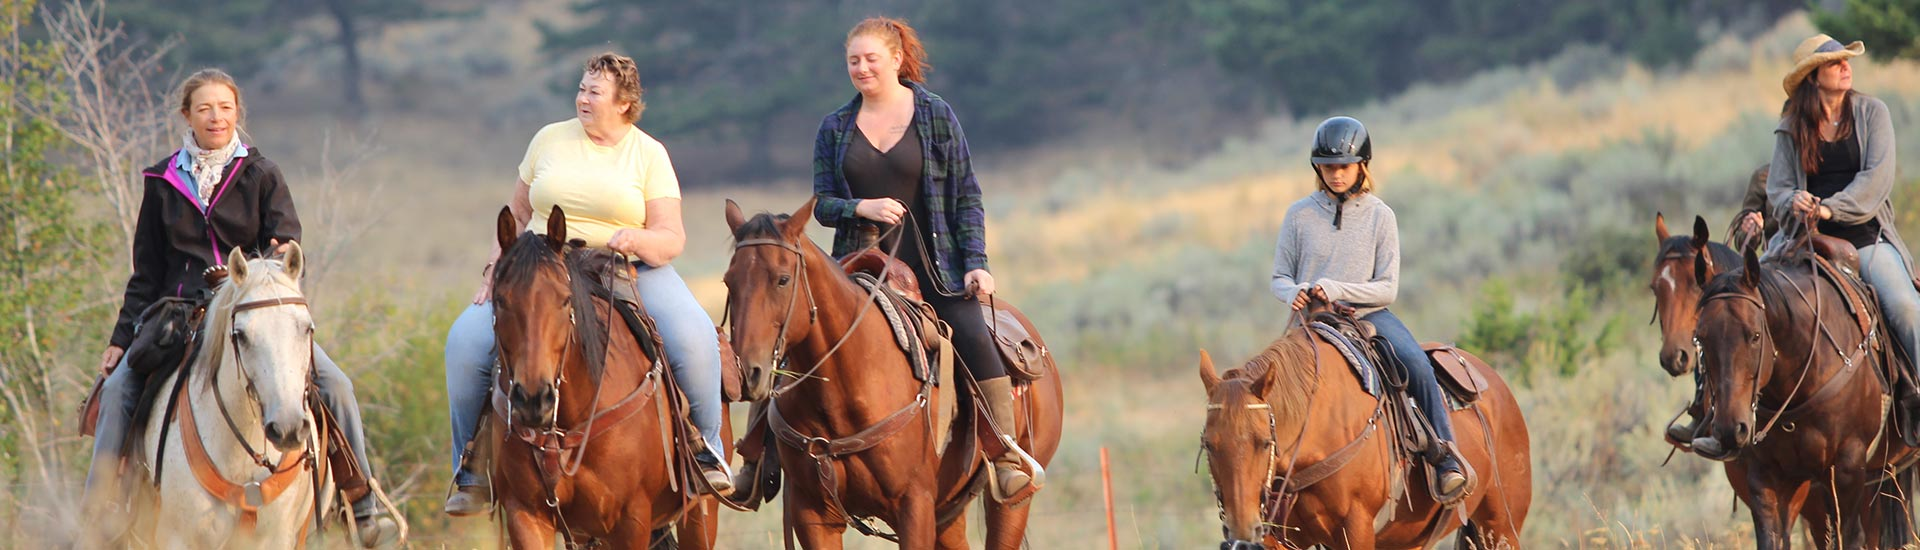 Montana Retreat - Women horseback riding